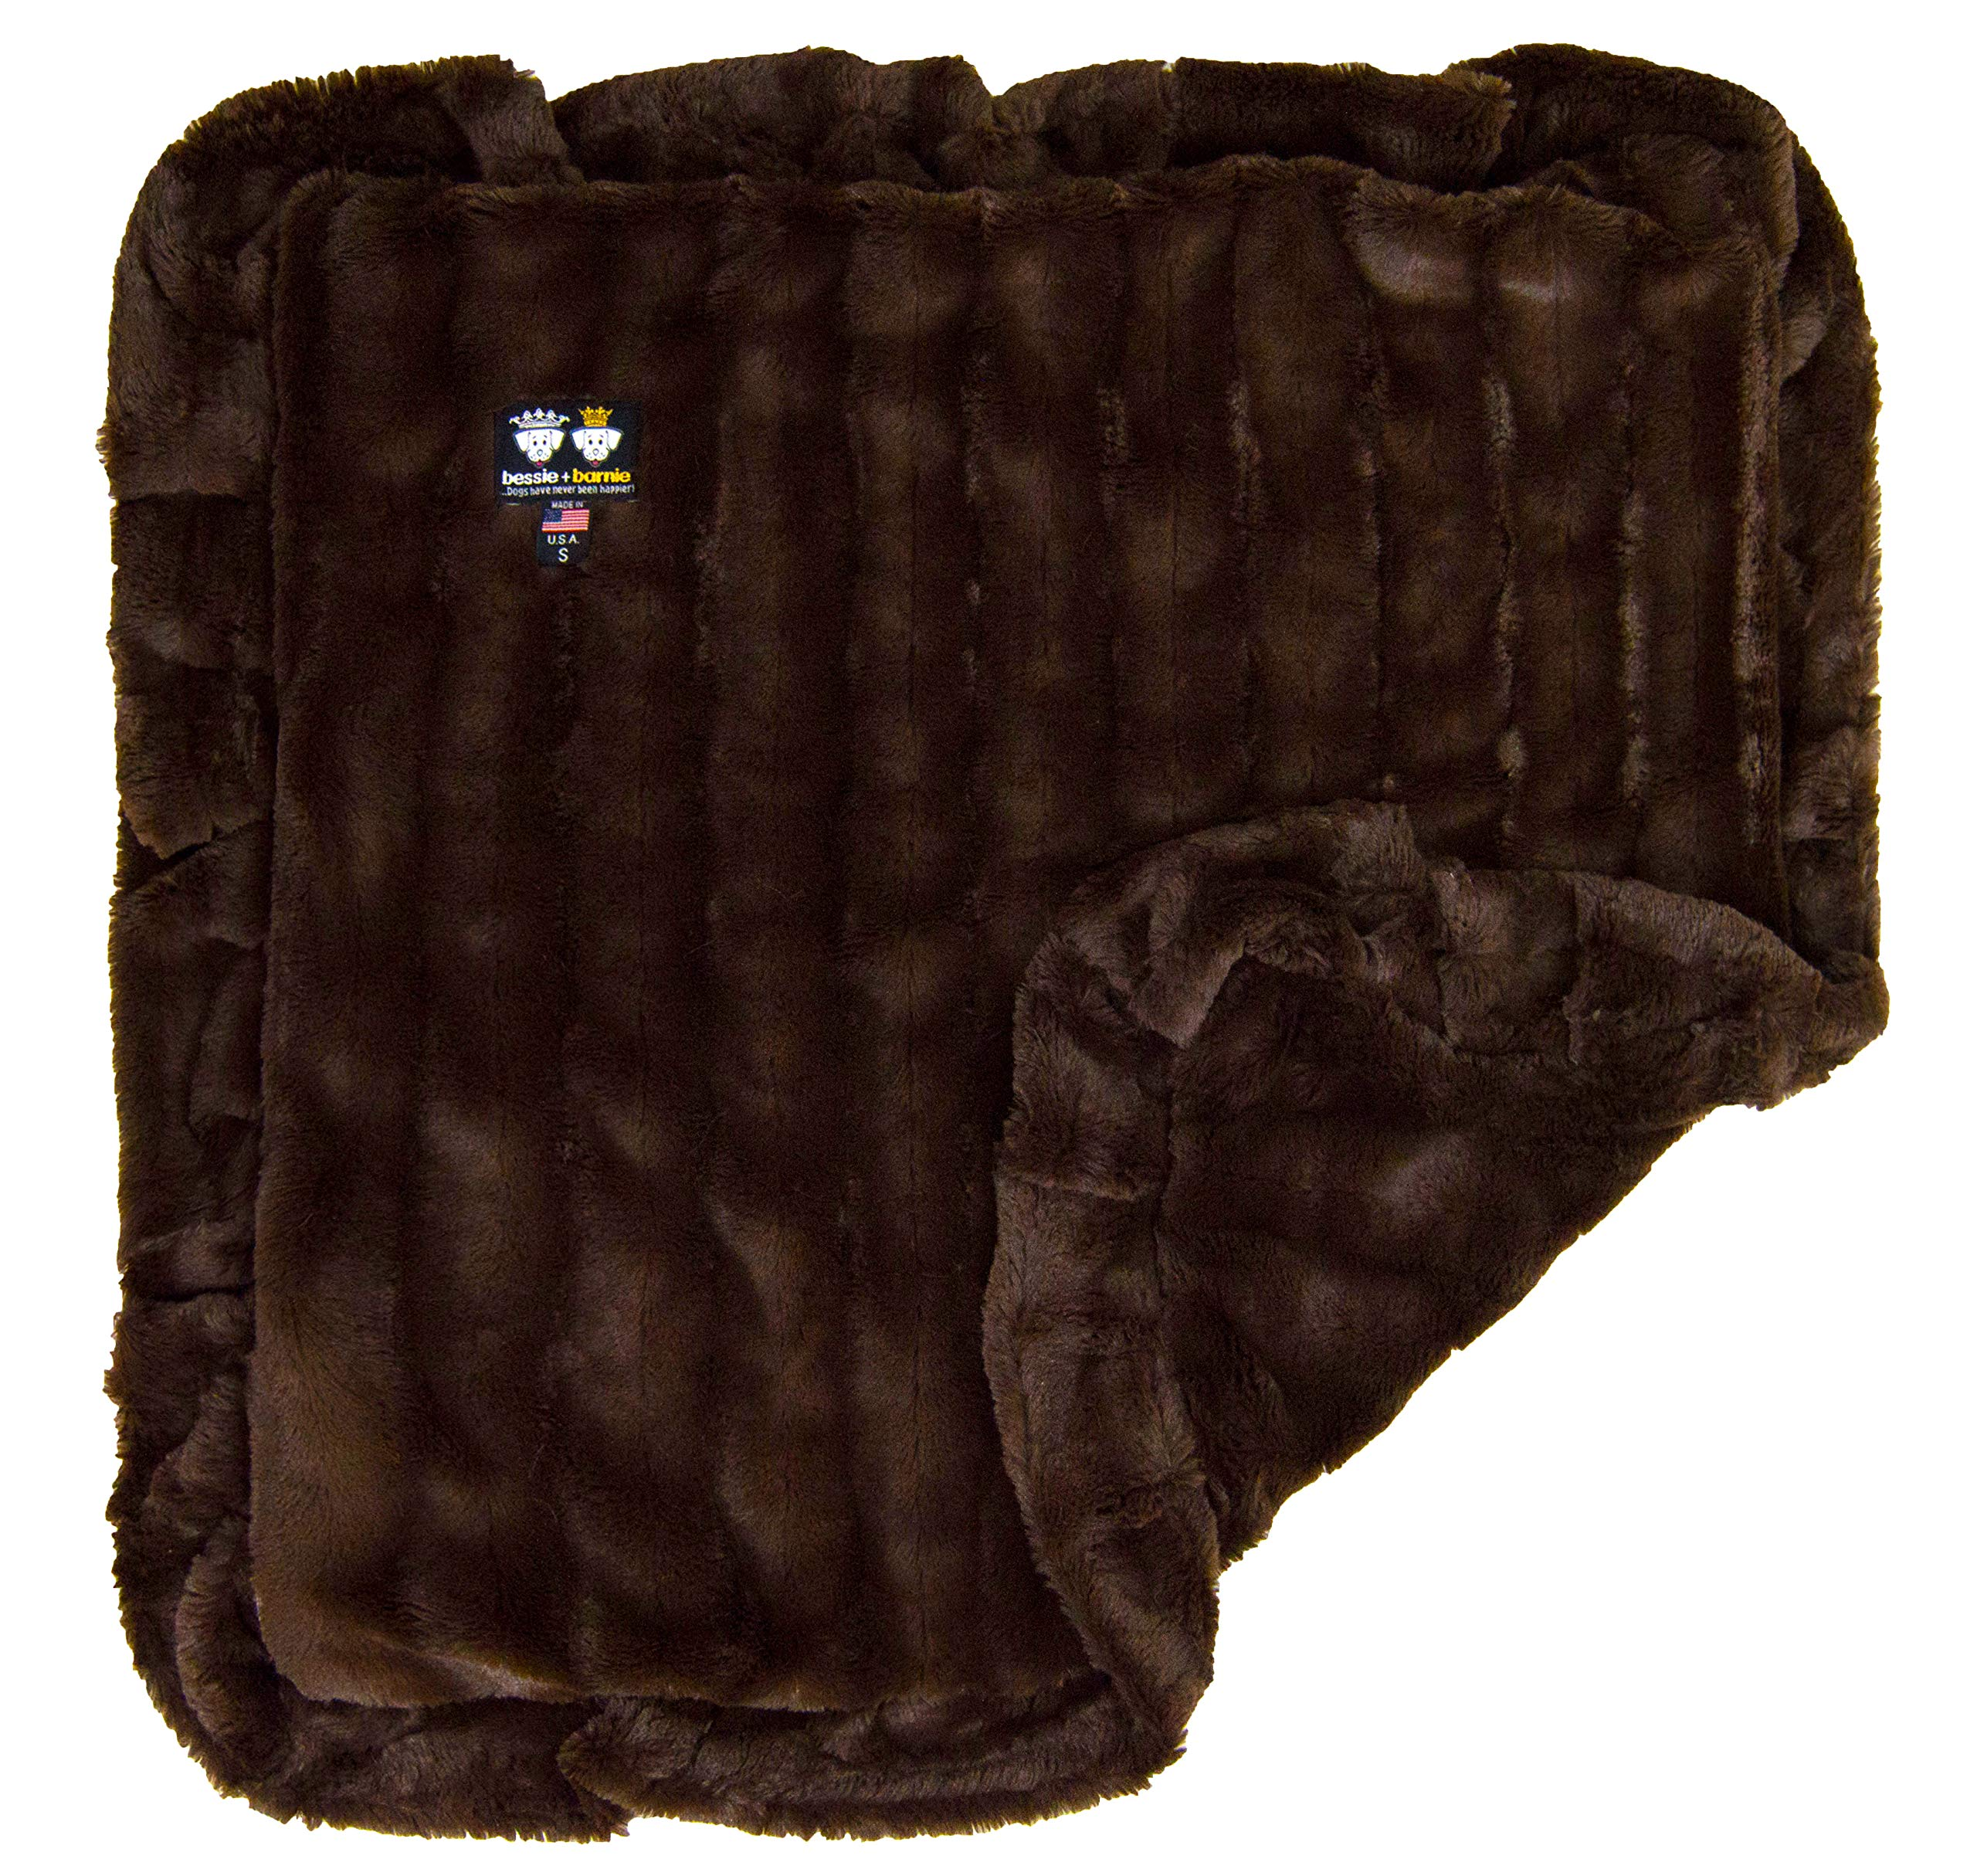 BESSIE AND BARNIE Godiva Brown (Ruffles) Luxury Ultra Plush Faux Fur Pet, Dog, Cat, Puppy Super Soft Reversible Blanket (Multiple Sizes)